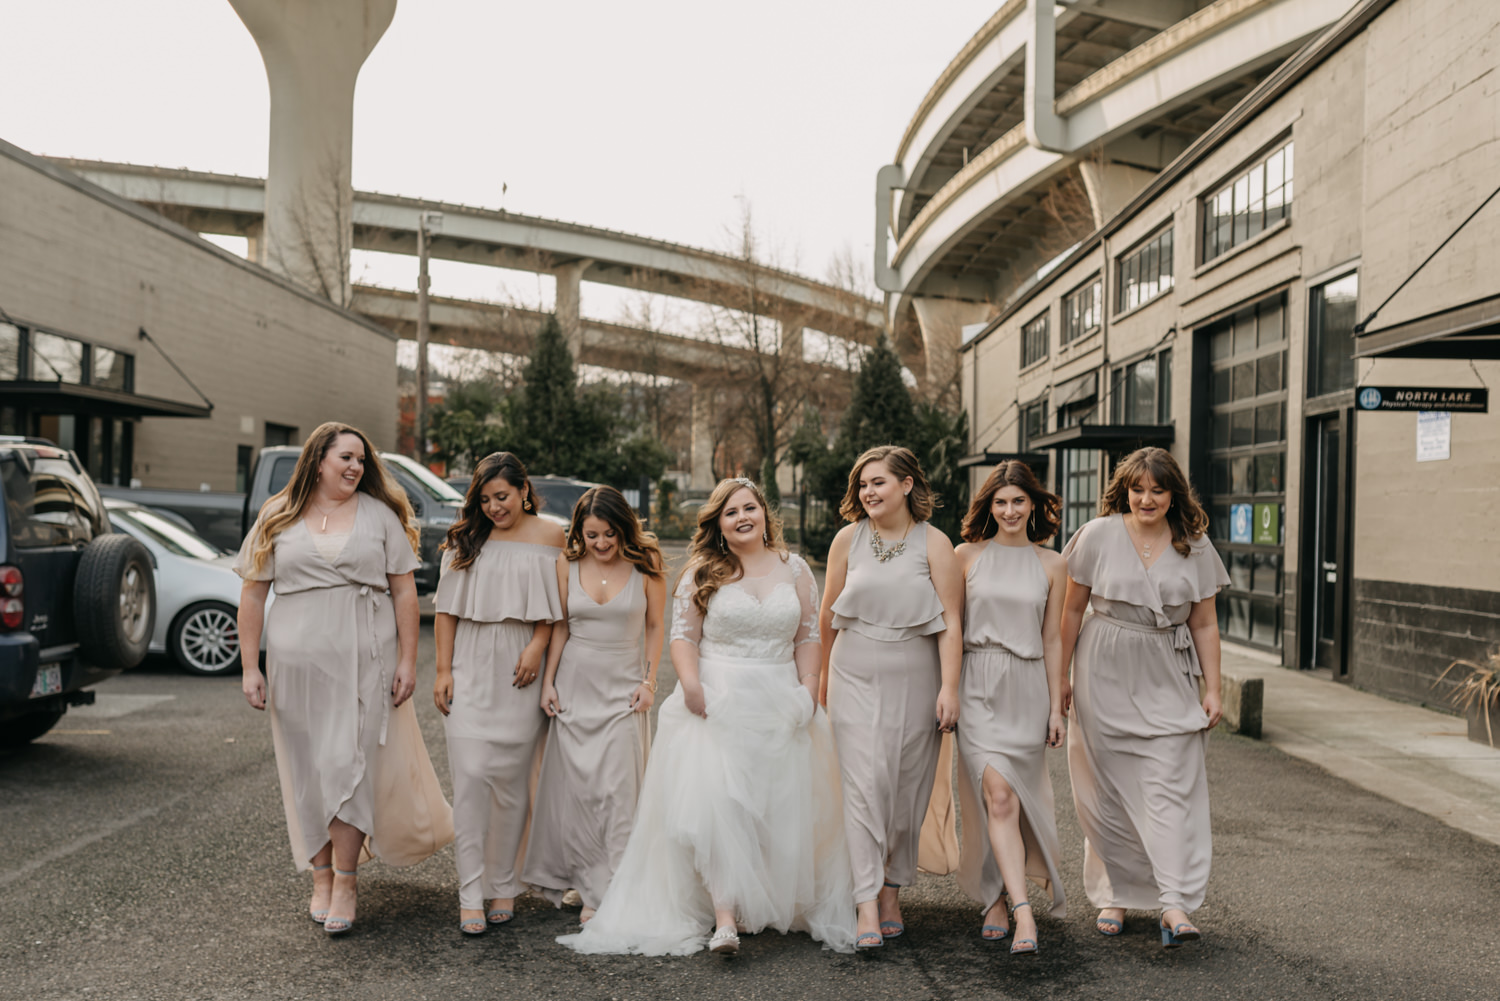 17Portland-Wedding-Getting-Ready-bridesmaids-pearl-district.jpg